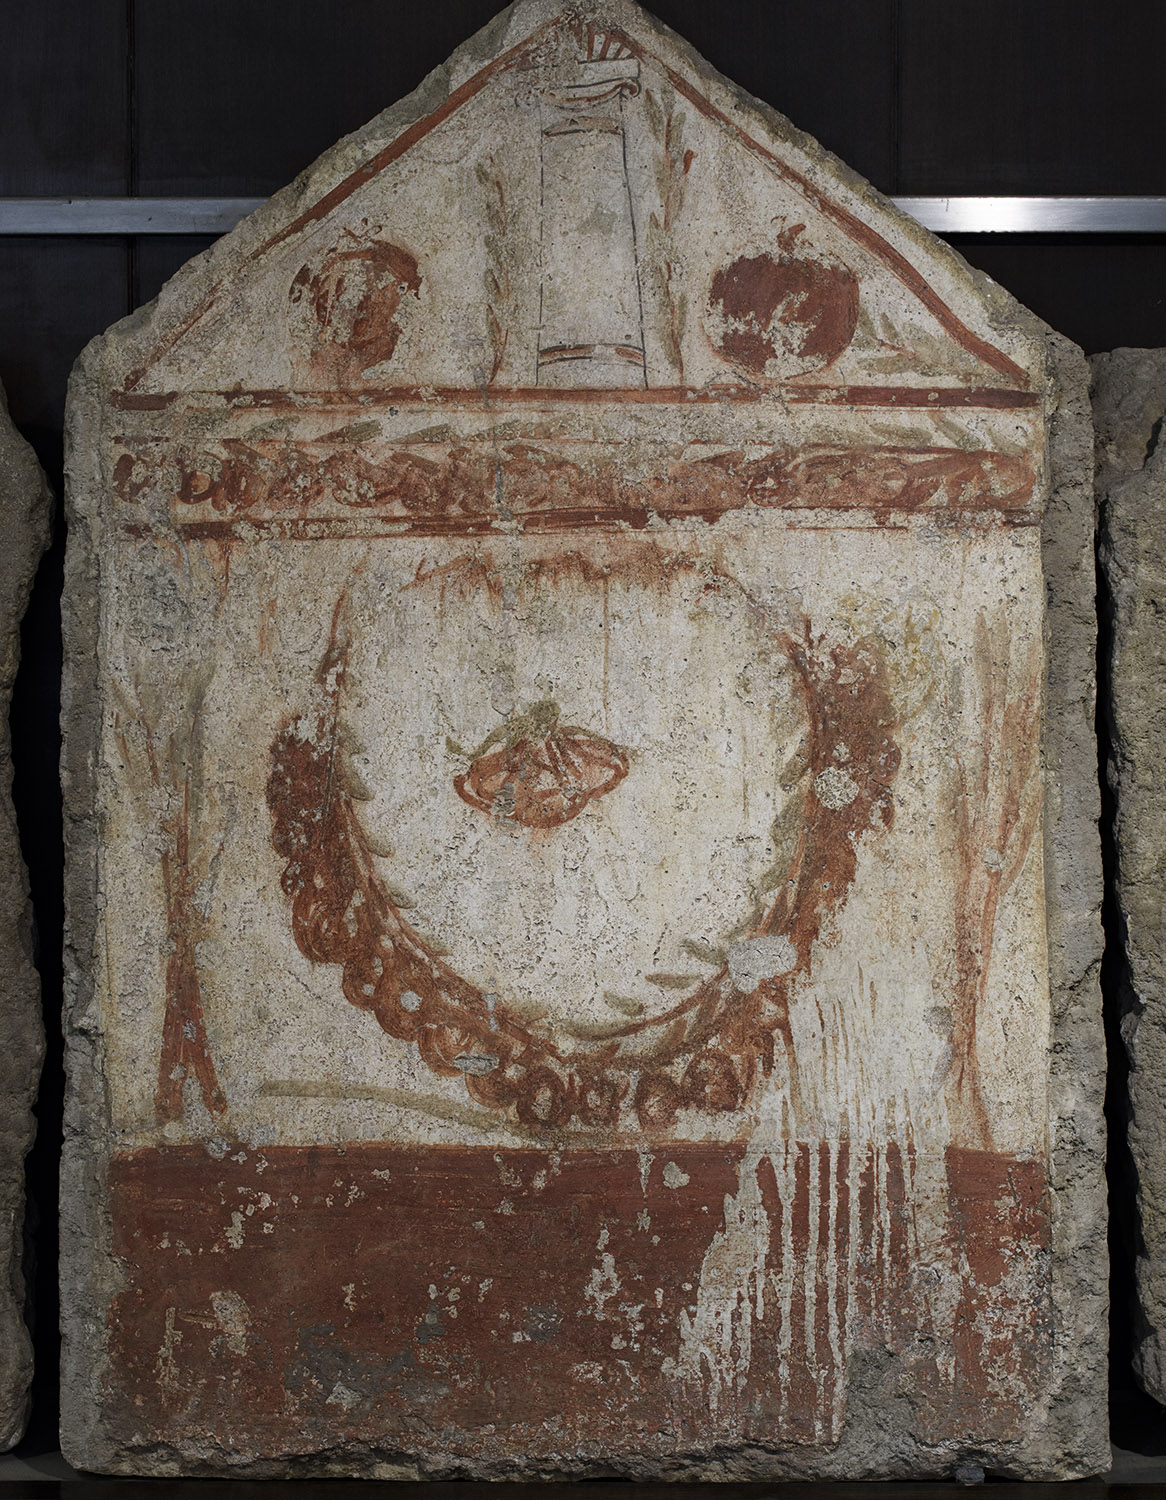 Crown between two small trees; on the pediment — a stone enclosed between branches of leaves and pomegranates. Fresco on the inside side of sarcophagus slab from a Lucanian Tomb. 370—360 BCE. Paestum, National Archaeological Museum